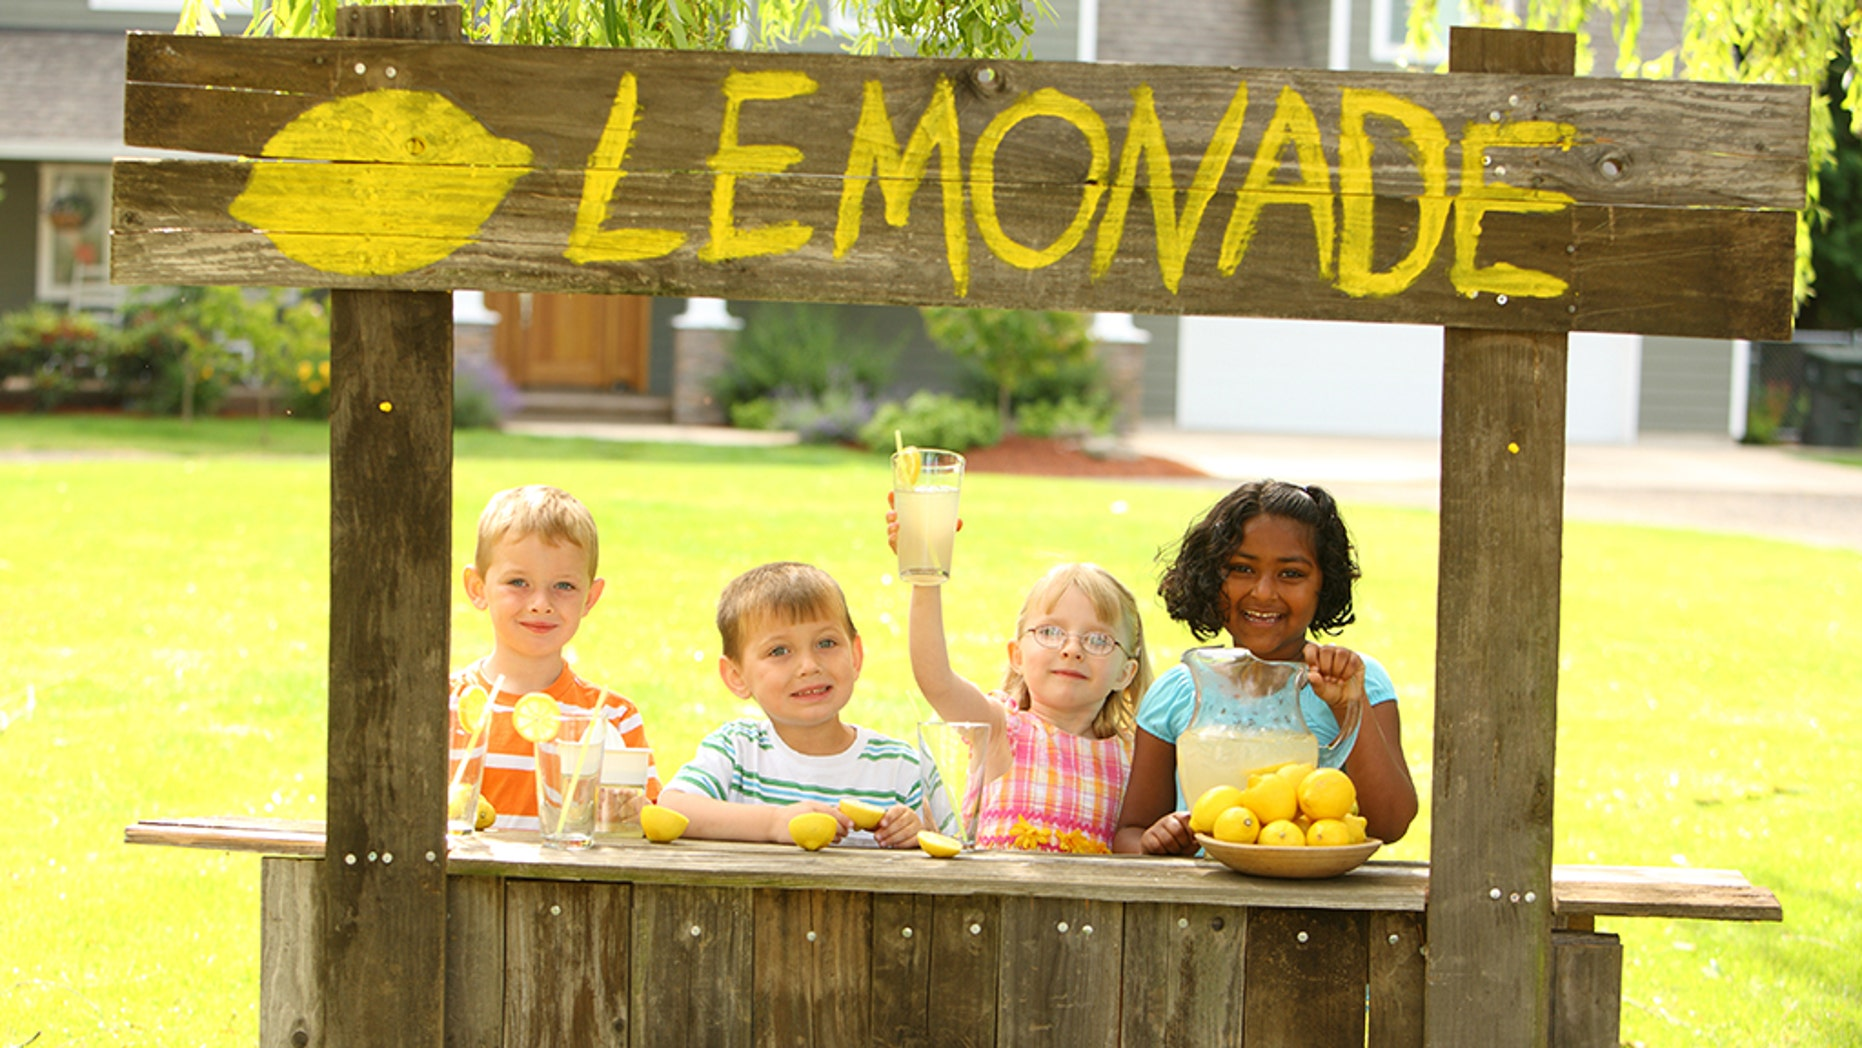 =The Texas House of Representatives on Wednesday passed a bill that would legalizelemonade stands run by children.